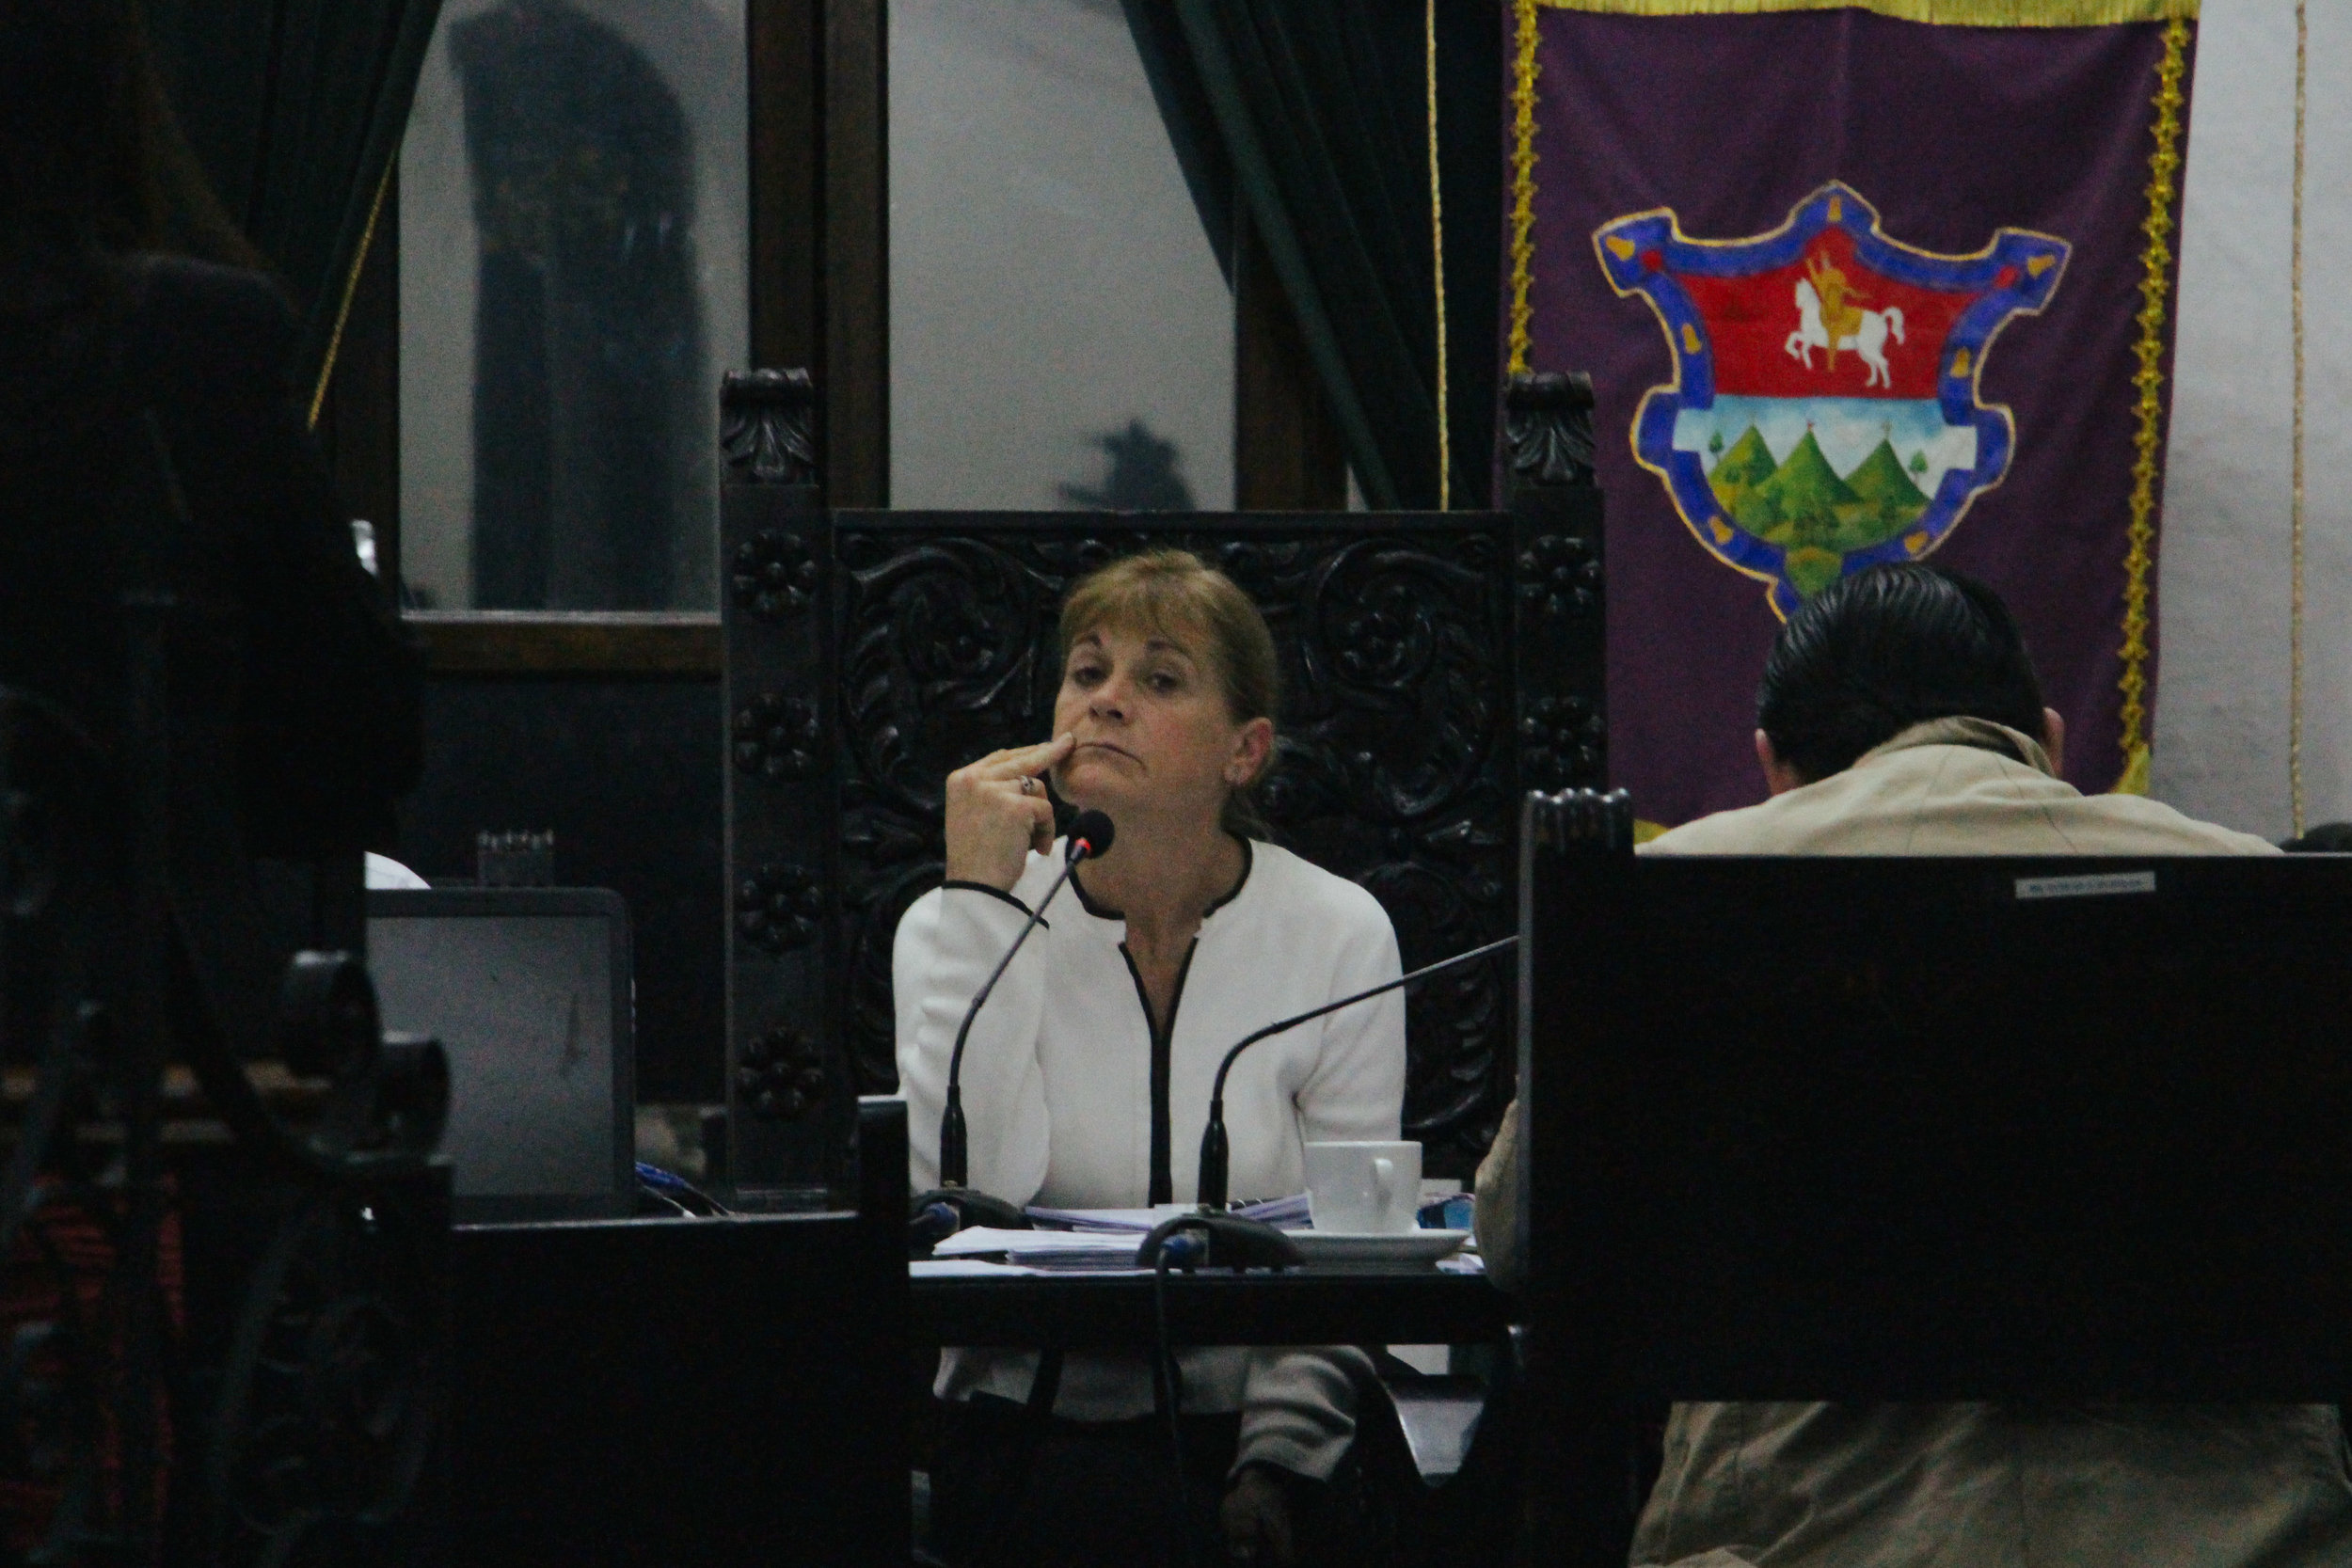 ANTIGUA MAYOR SUSANA ASENSIO RESTS TWO FINGERS BY HER MOUTH AS SHE SITS IN THE CITY COUNCIL MEETING IN CITY HALL ON JAN. 16. ASENSIO, FORMER ARCHITECT, BECAME THE FIRST FEMALE MAYOR OF ANTIGUA ON JAN. 15, 2016 AND WILL HOLD THIS POSITION UNTIL JANUARY 2020.